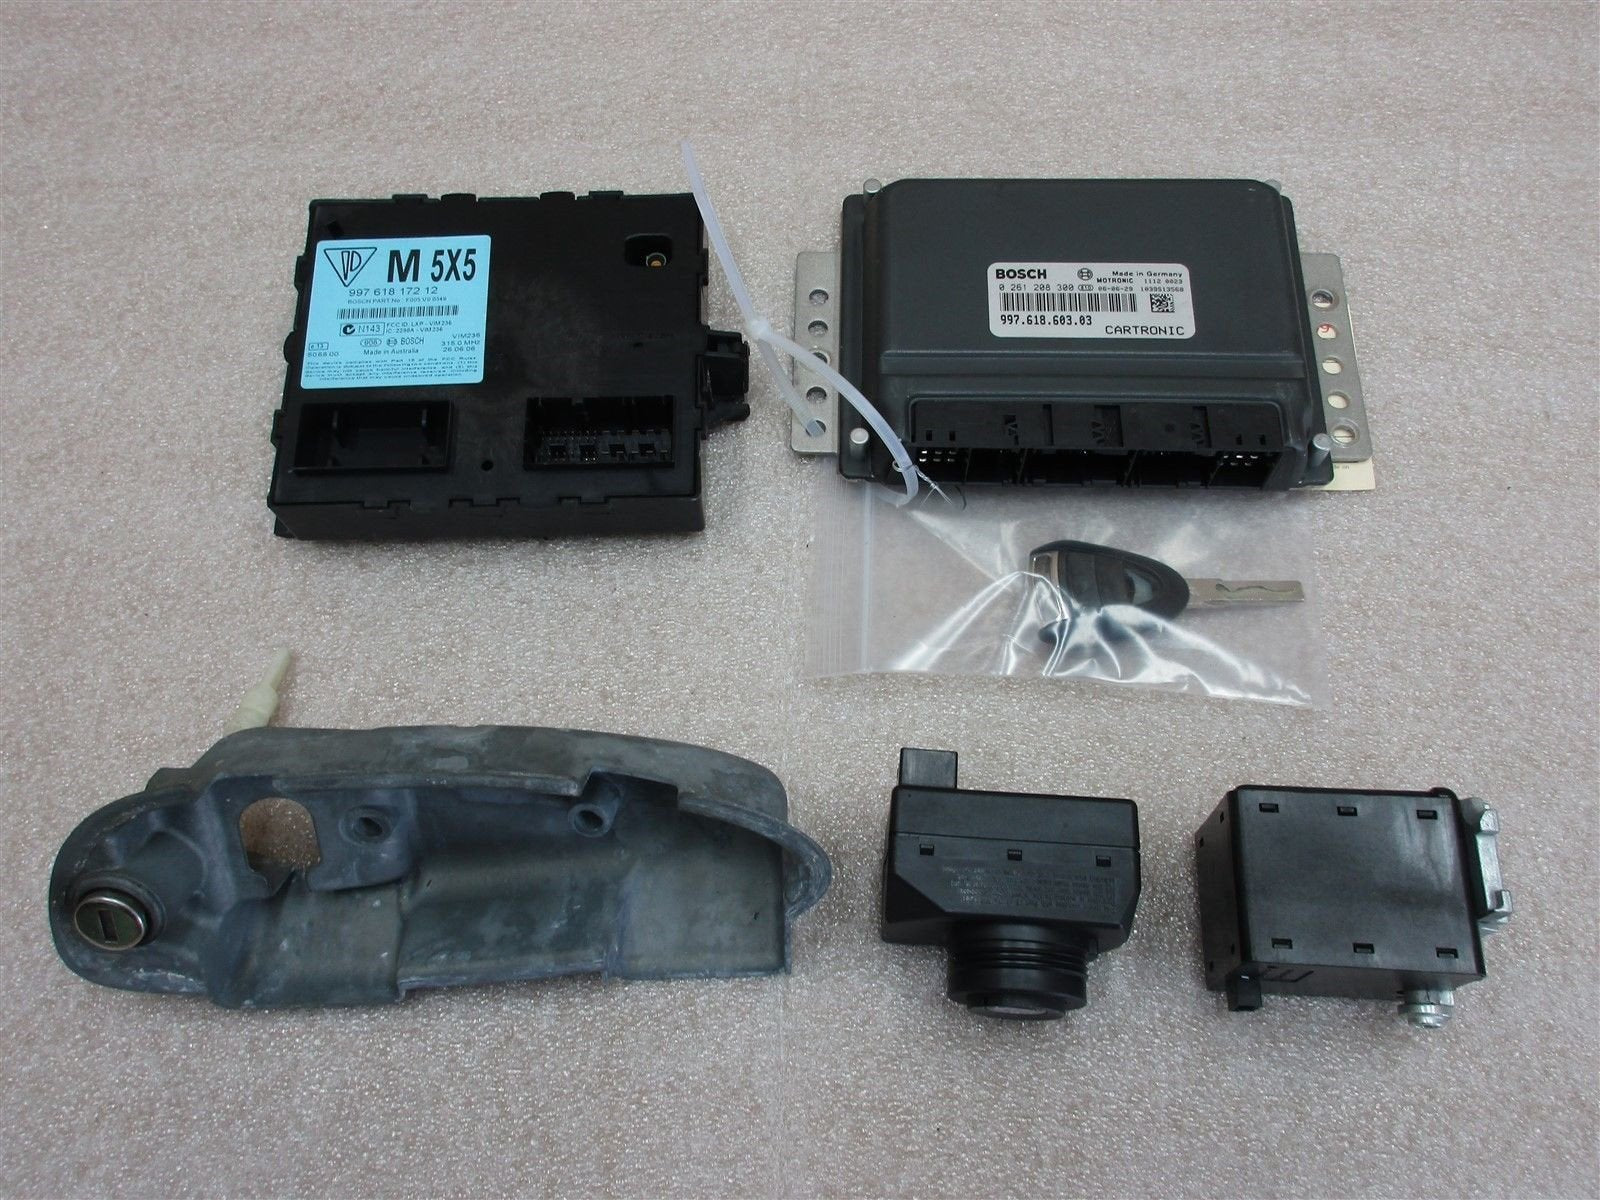 07 Cayman S Porsche 987 KEY IMMOBILISER SET 99761860303 ENGINE COMPUTER 72,406